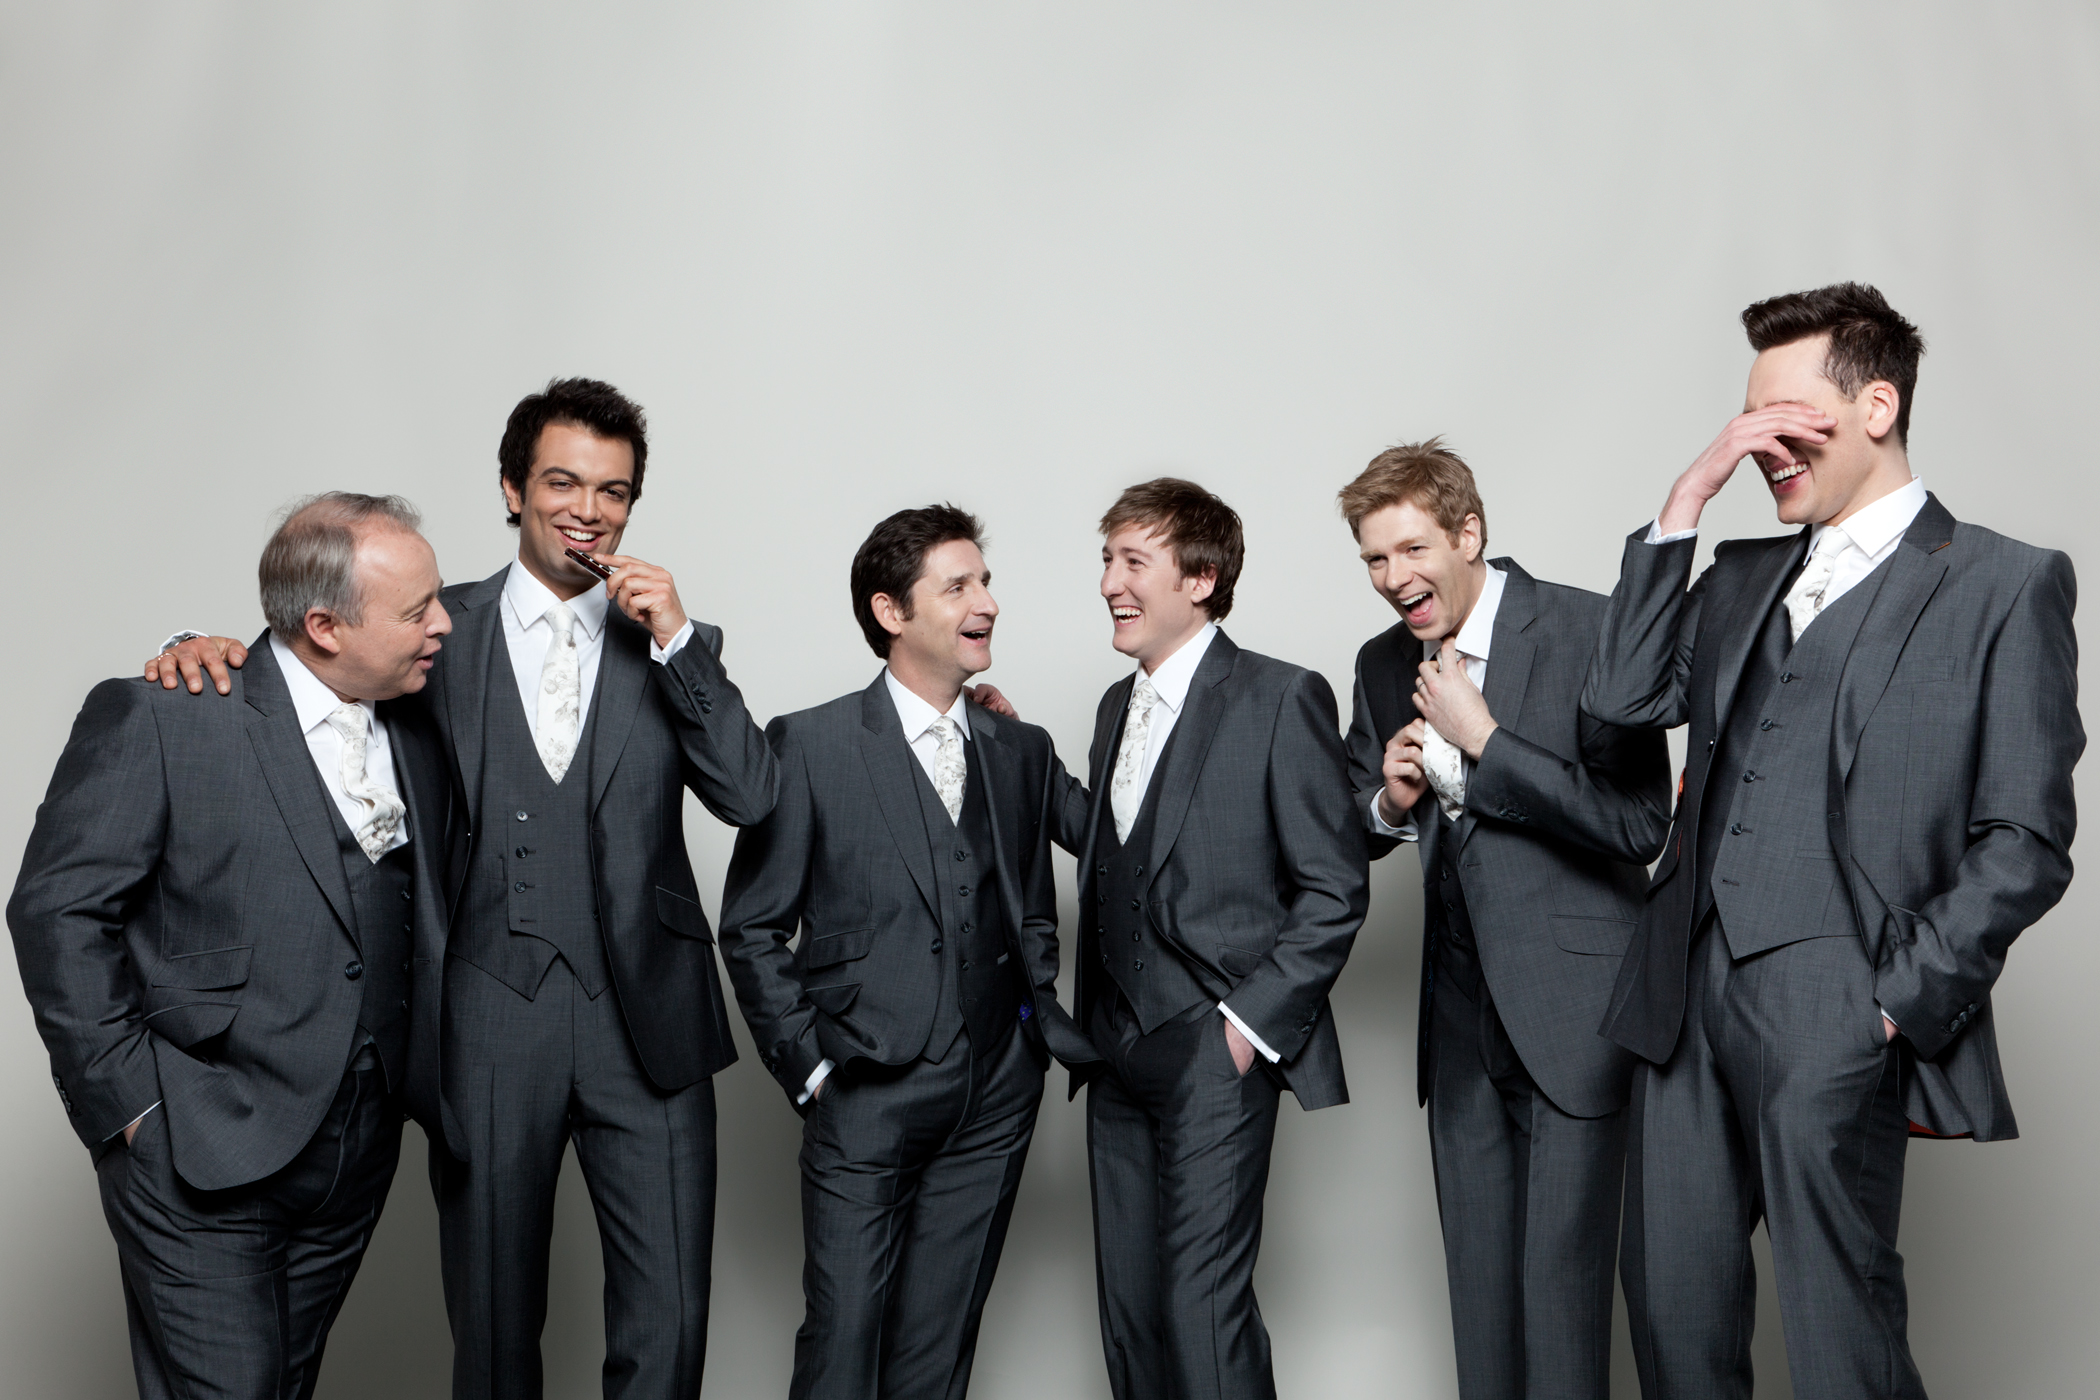 Catch The King's Singers Live, September 19th and 25th ...